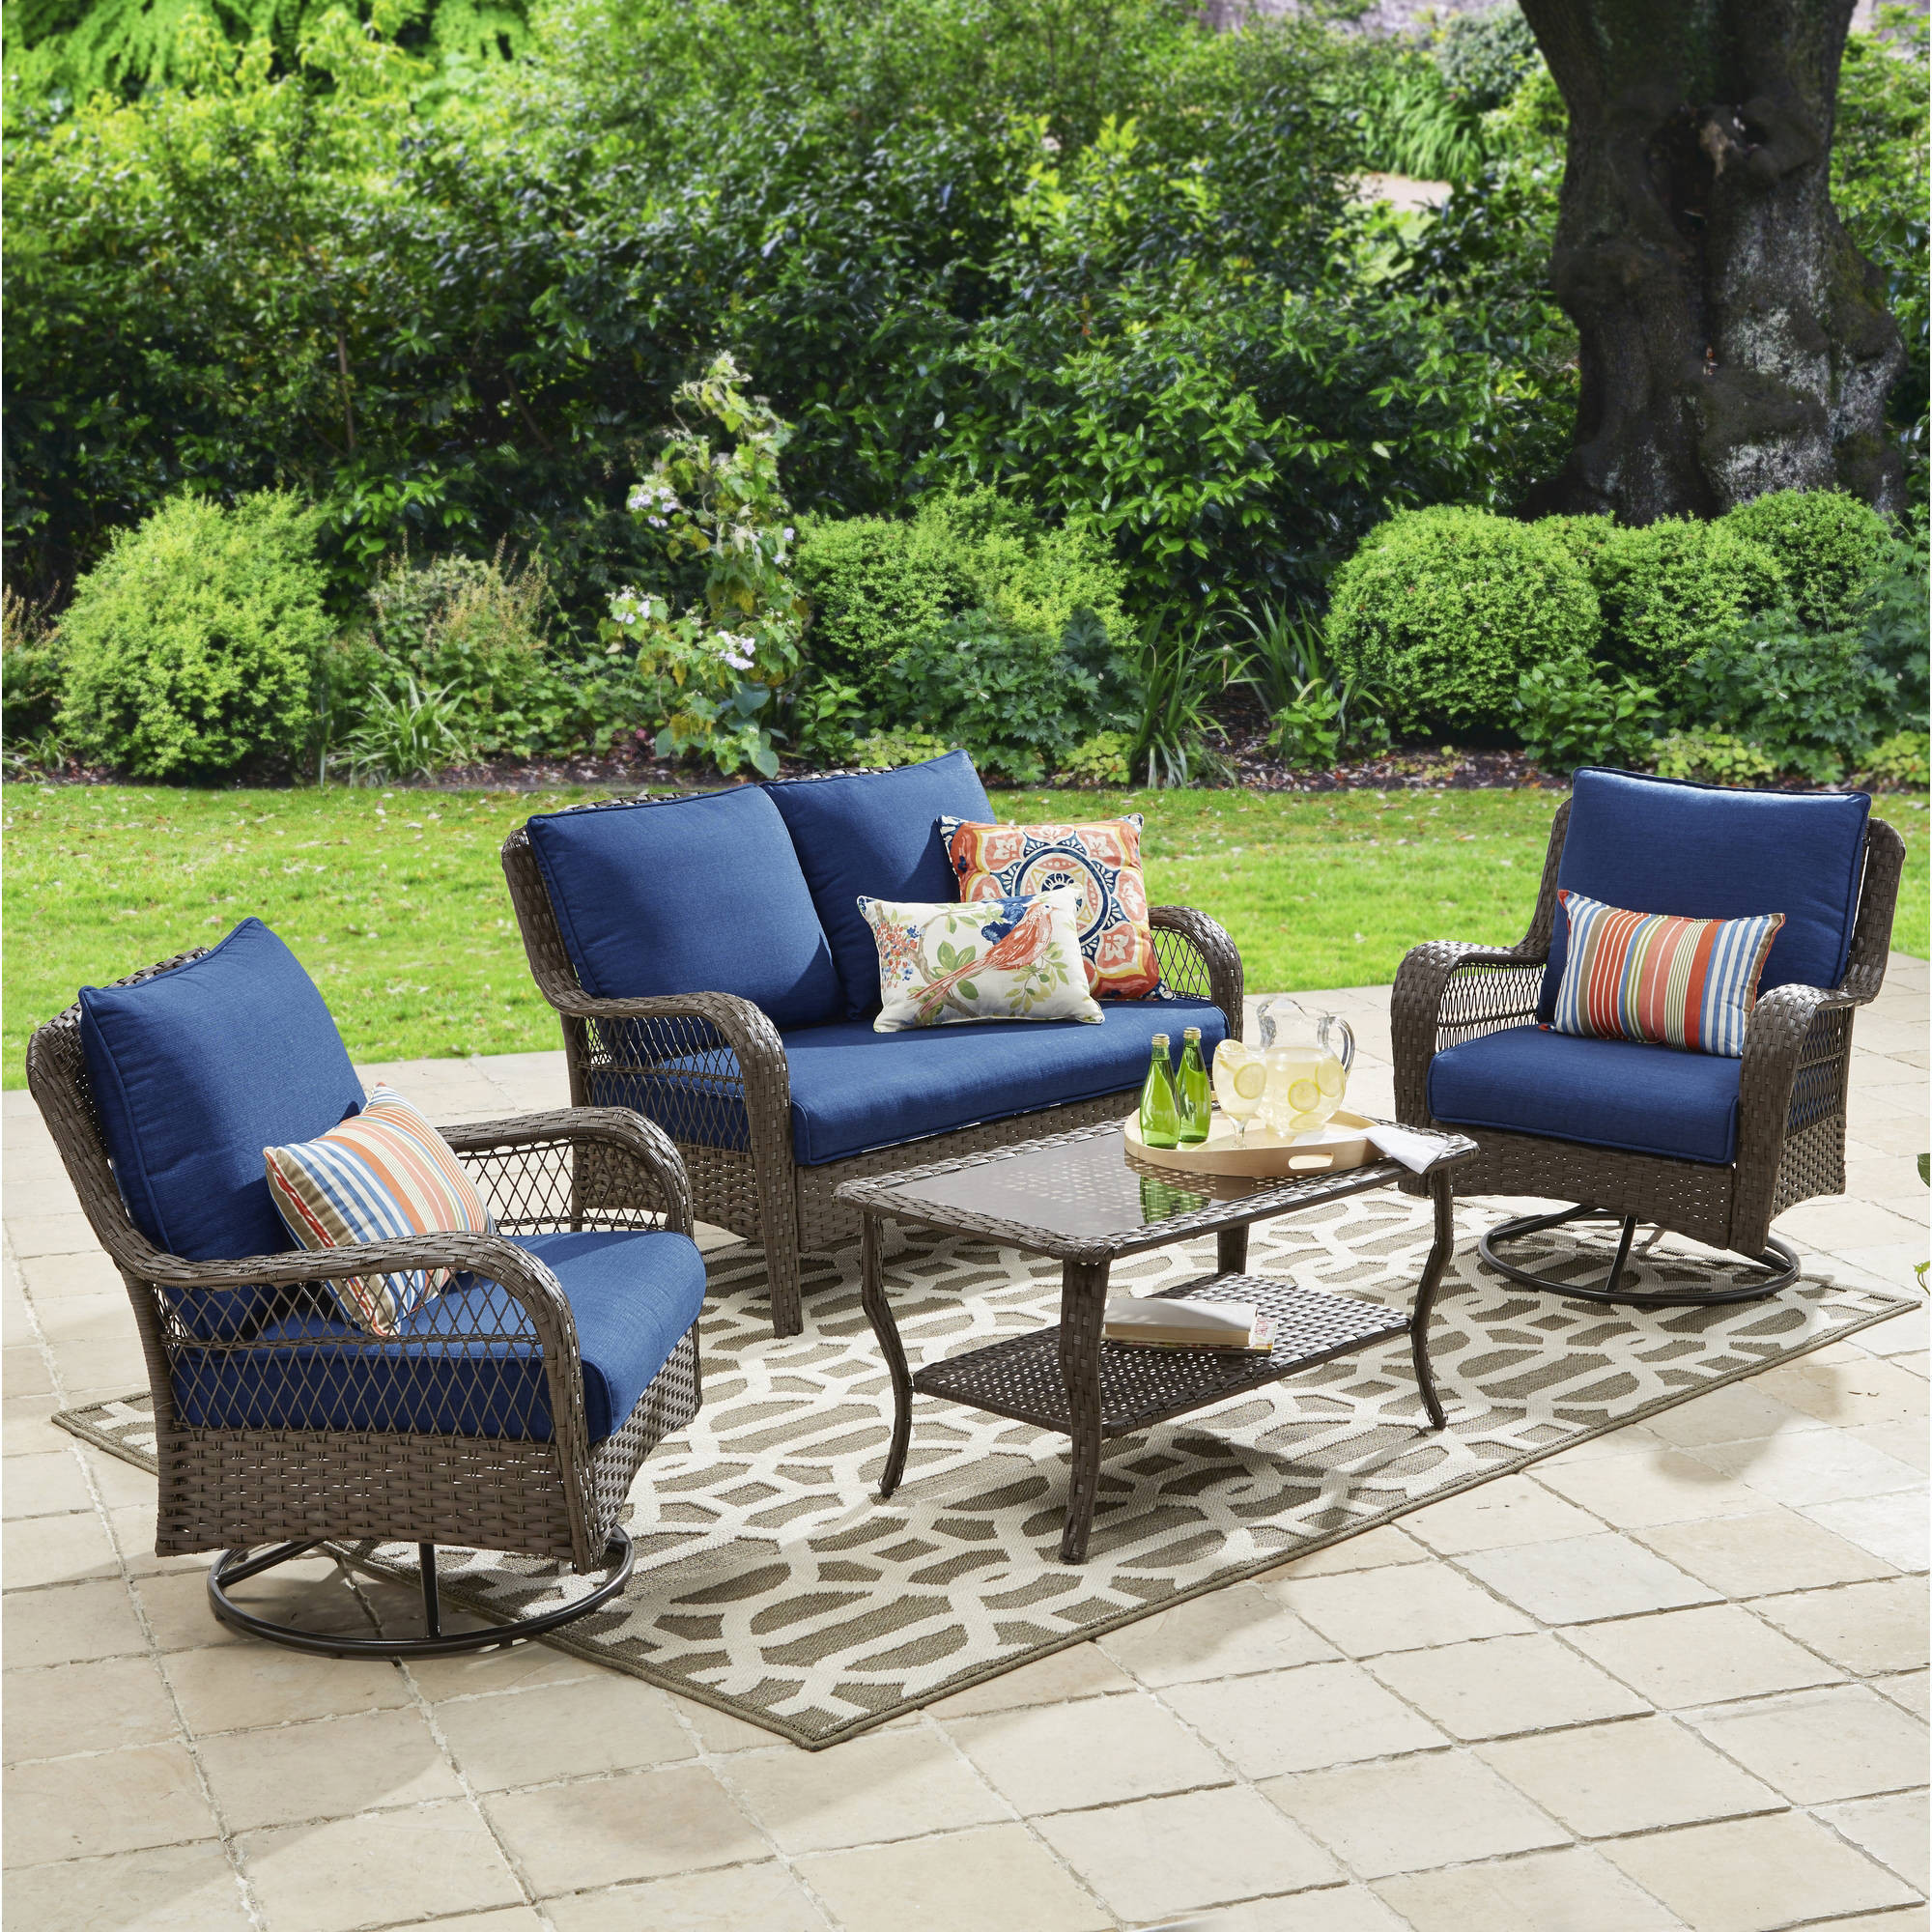 Best ideas about Better Homes And Gardens Patio Cushions . Save or Pin Better Homes and Gardens Patio Furniture Walmart Now.